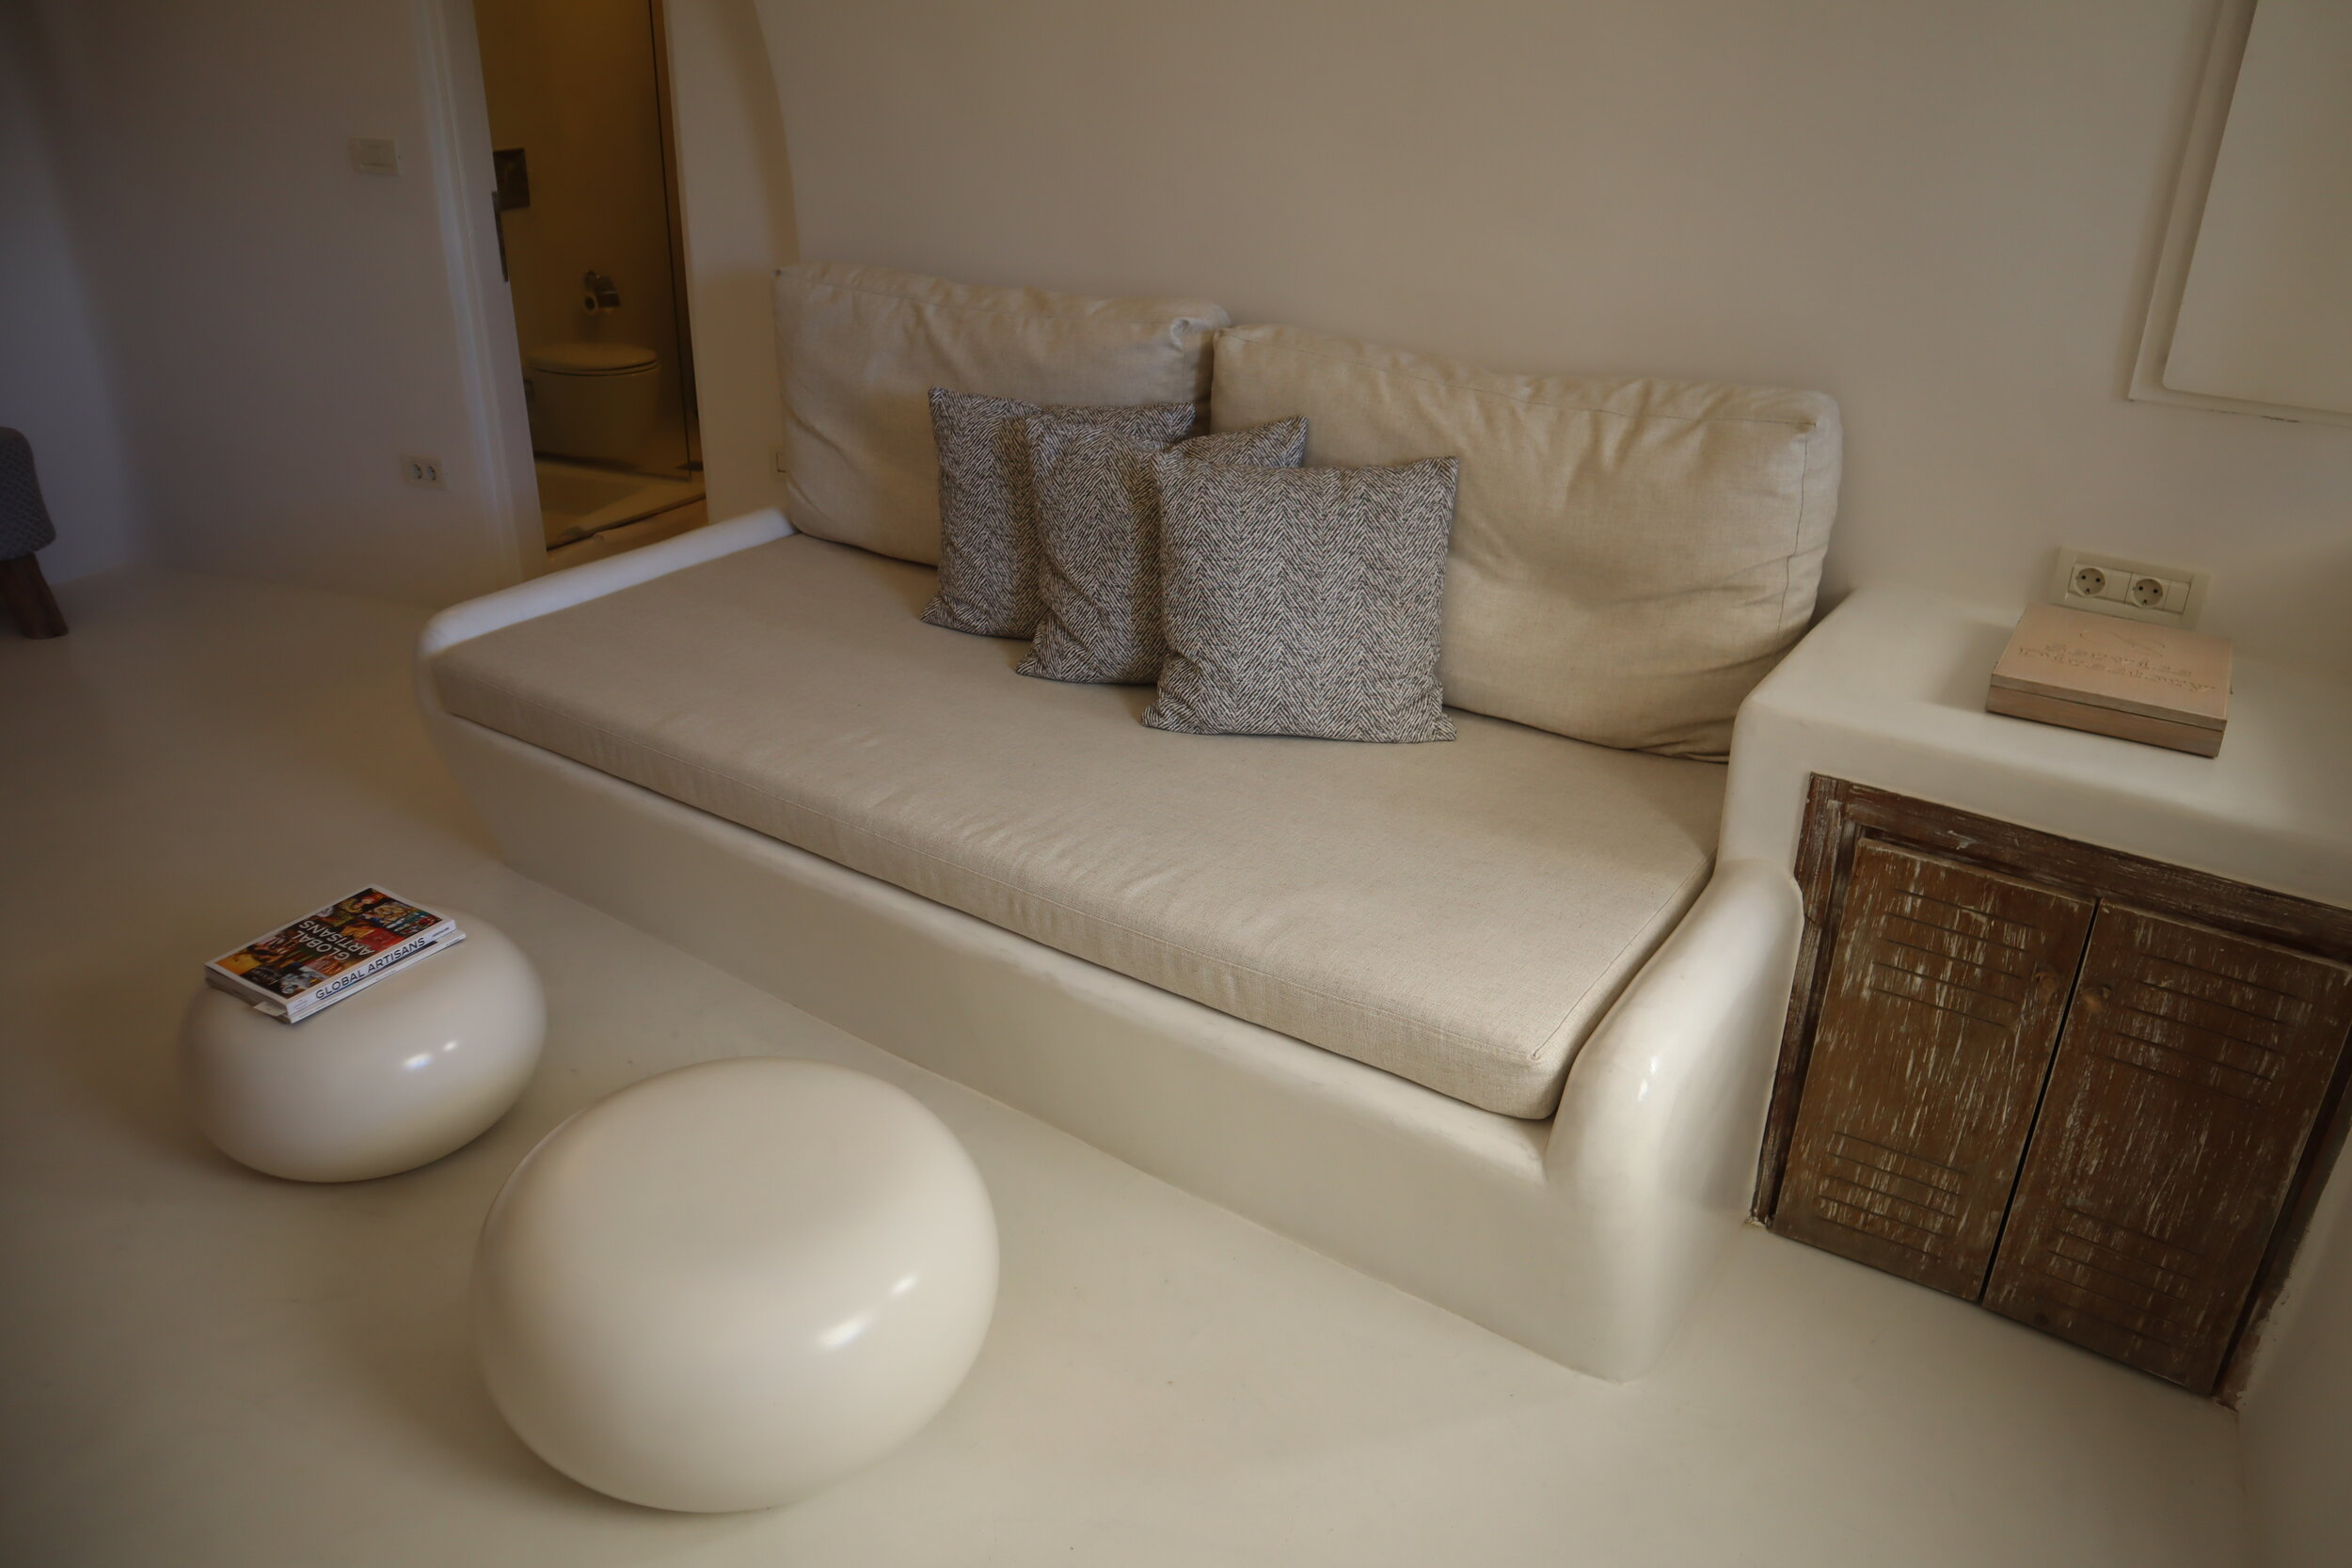 Mystique Santorini – Wet Allure Suite sitting area